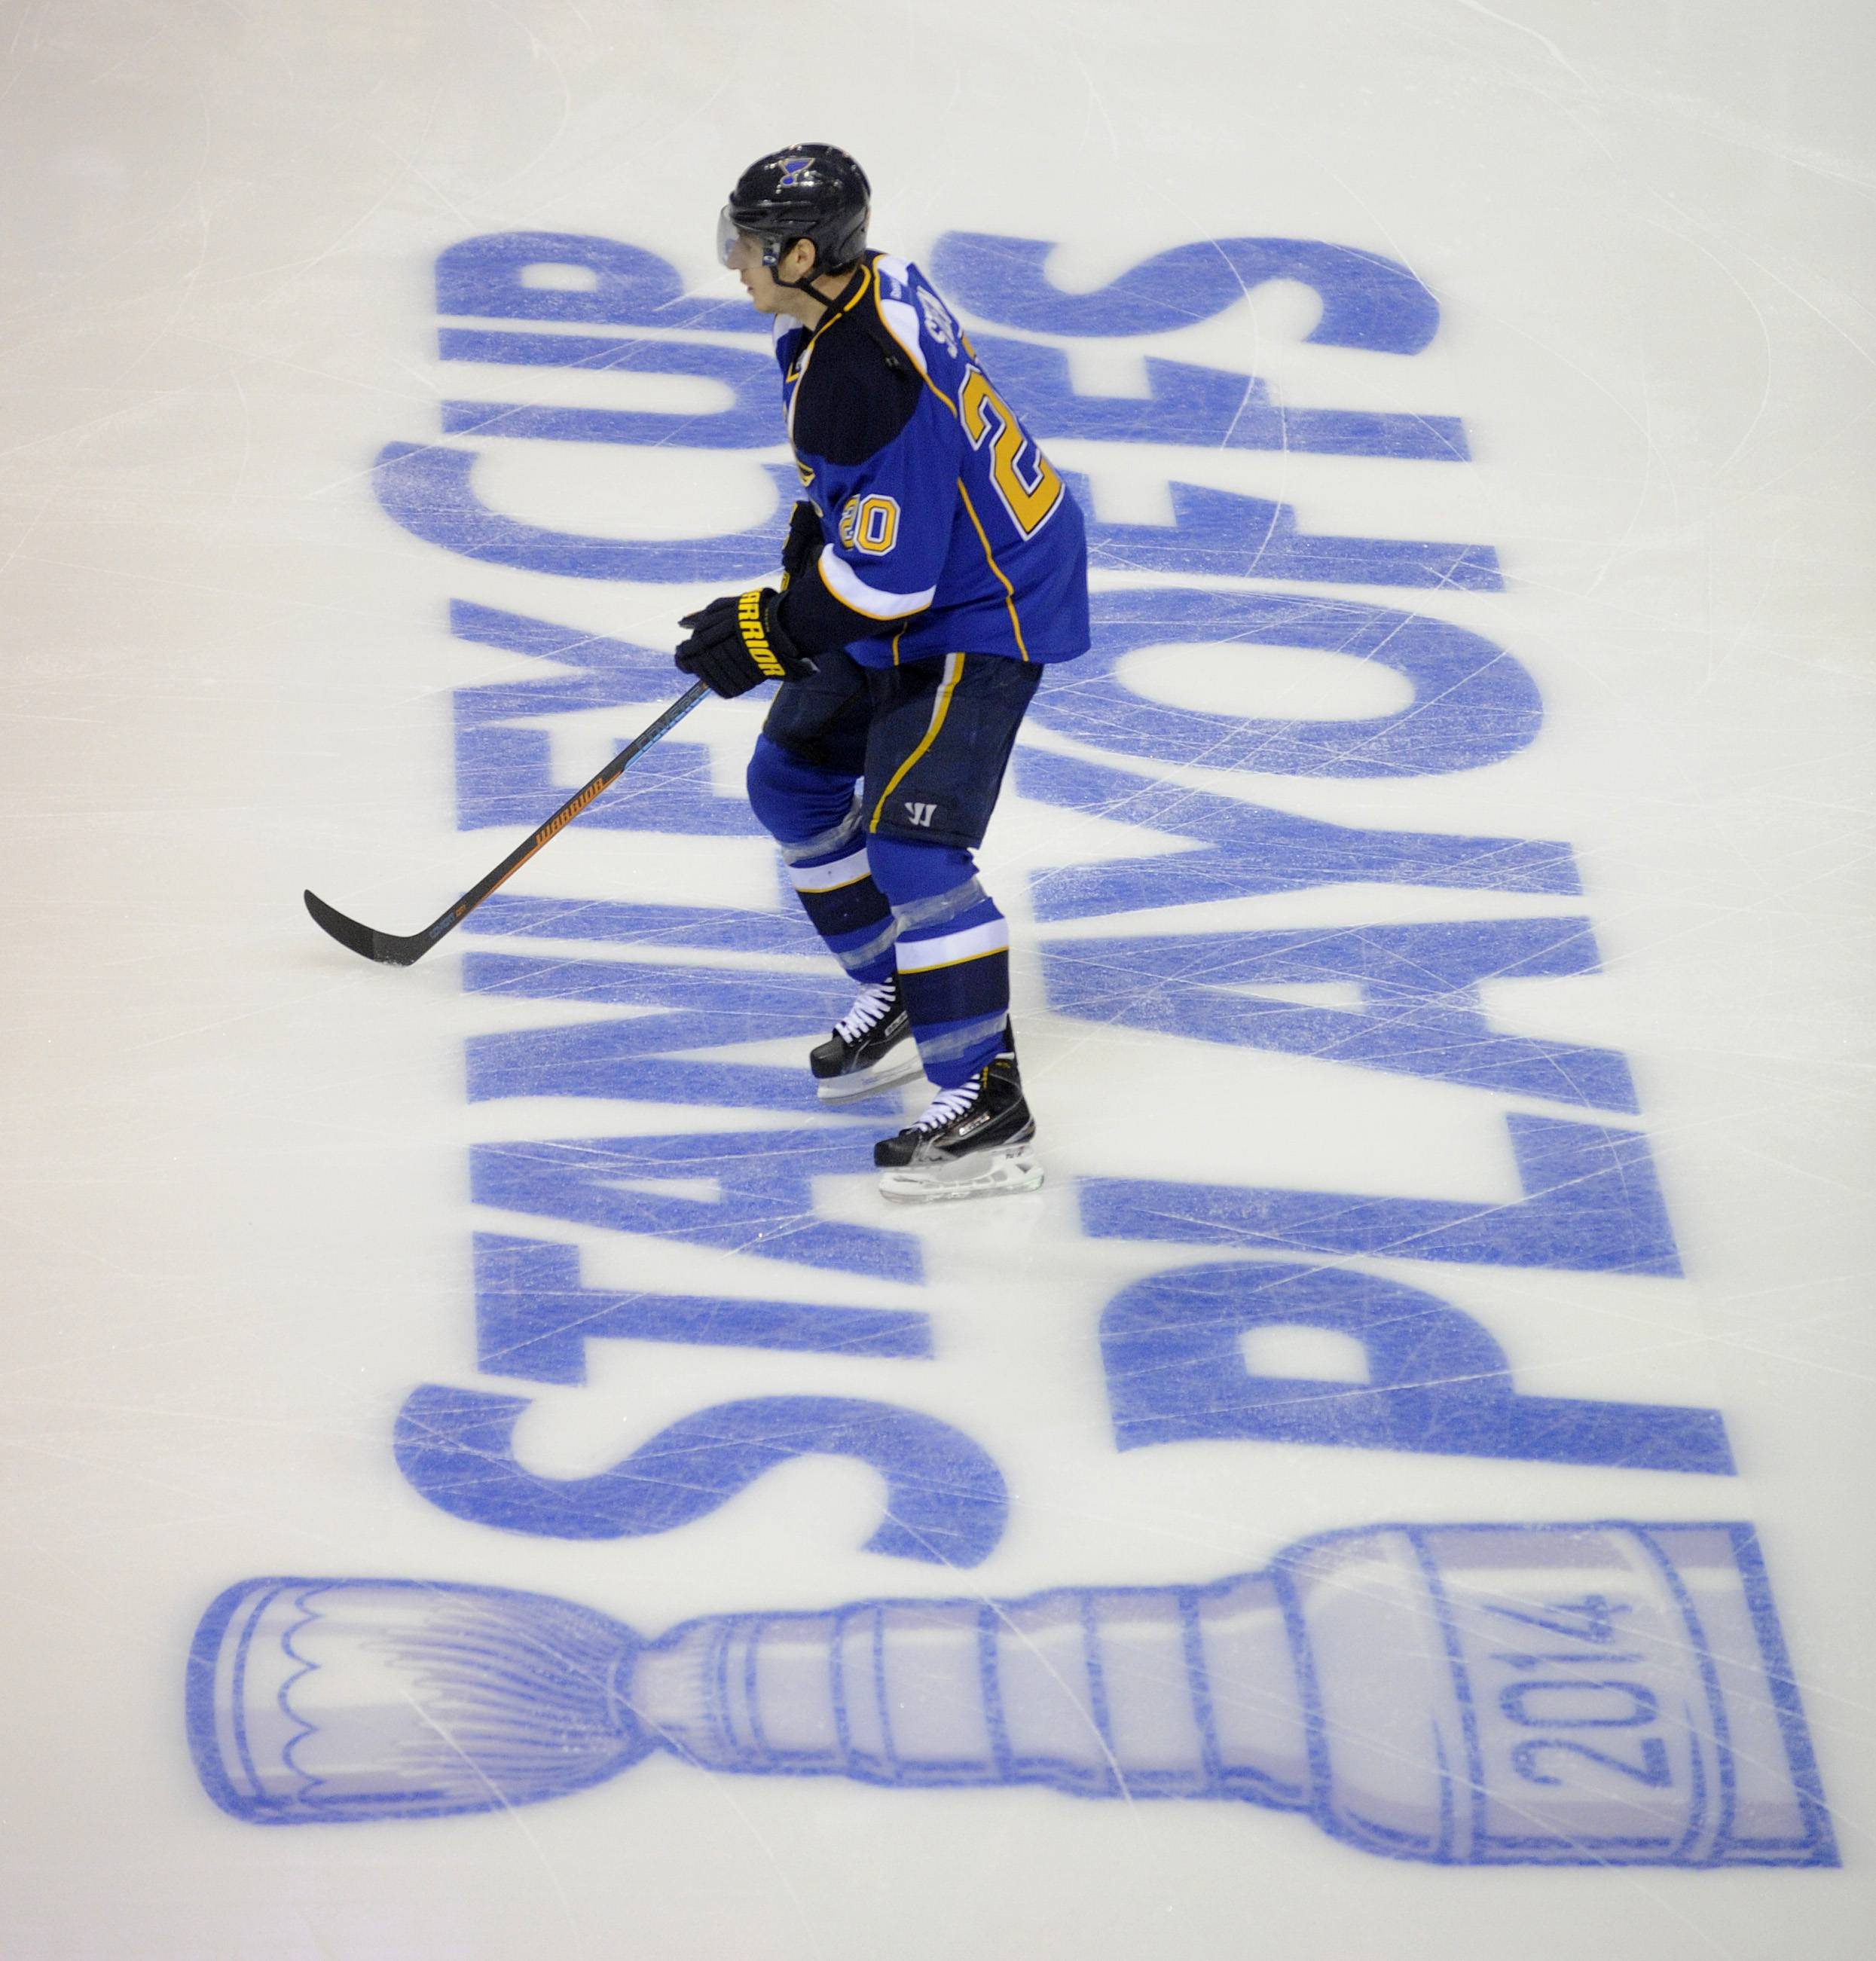 St. Louis Blues' Alexander Steen warms up prior to Game 2 of a first-round NHL hockey Stanley Cup playoff series against the Chicago Blackhawks, Saturday, April 19, 2014, in St. Louis.